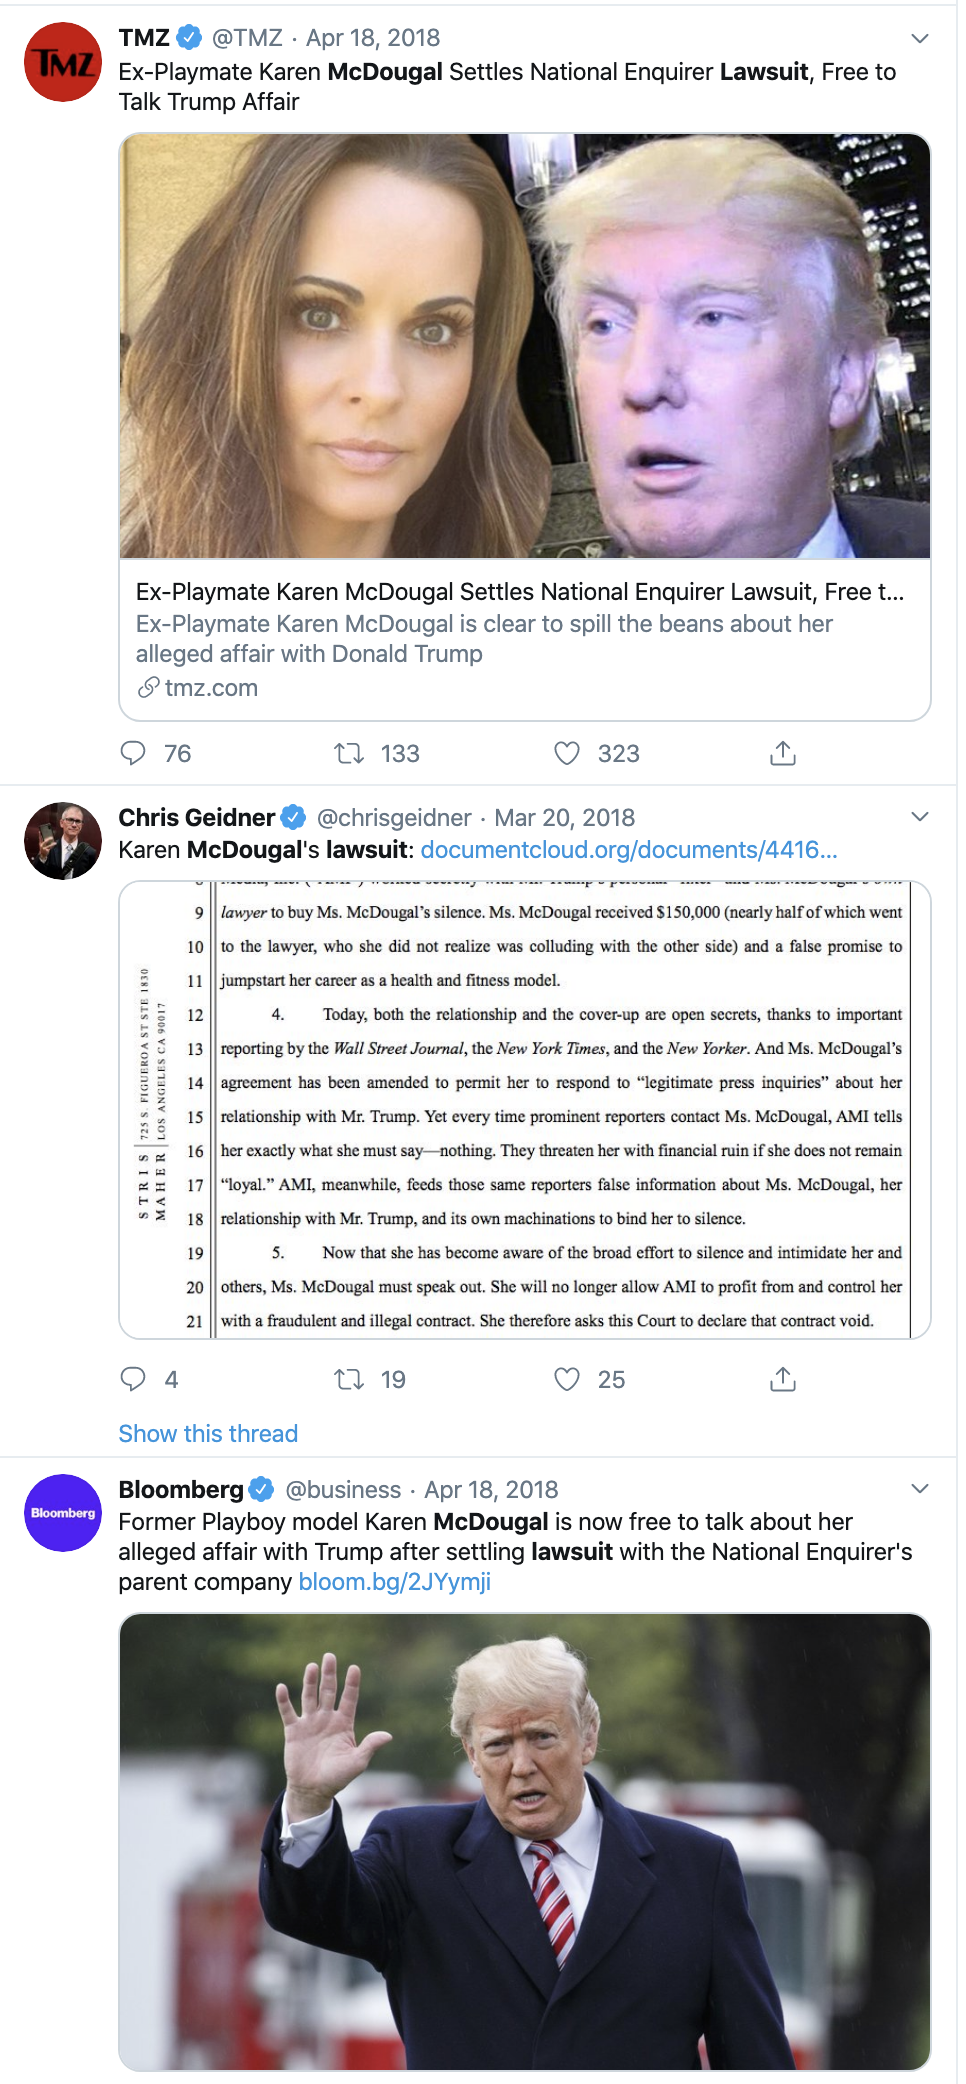 Screen-Shot-2019-12-05-at-11.53.07-AM Trump Accuser Karen McDougal Takes Tucker Carlson To Court Corruption Featured Feminism Me Too Top Stories